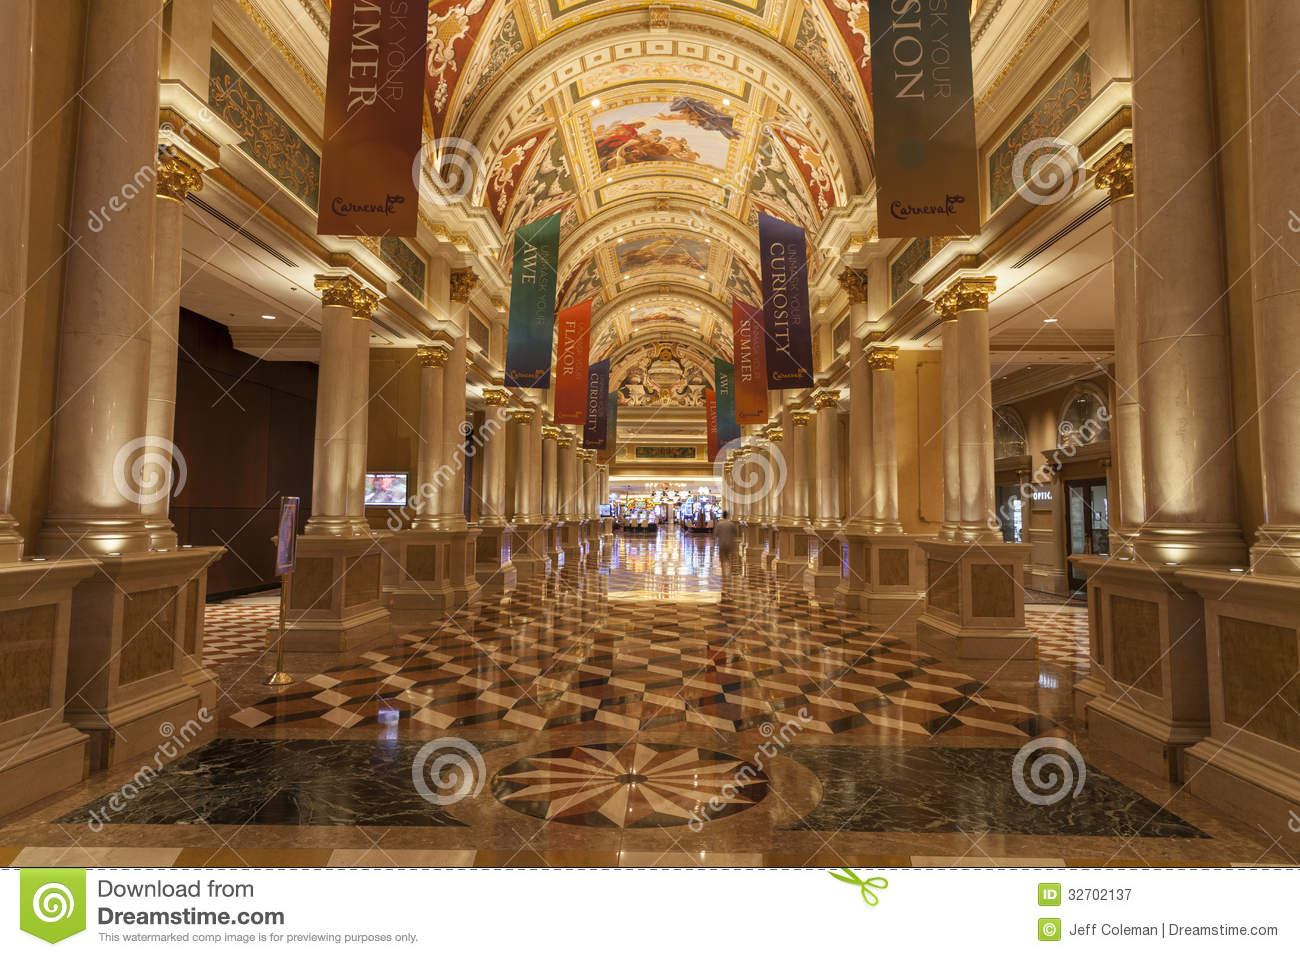 Palazzo hotel interior in las vegas nv on august 02 2013 for Creative design interior of nevada